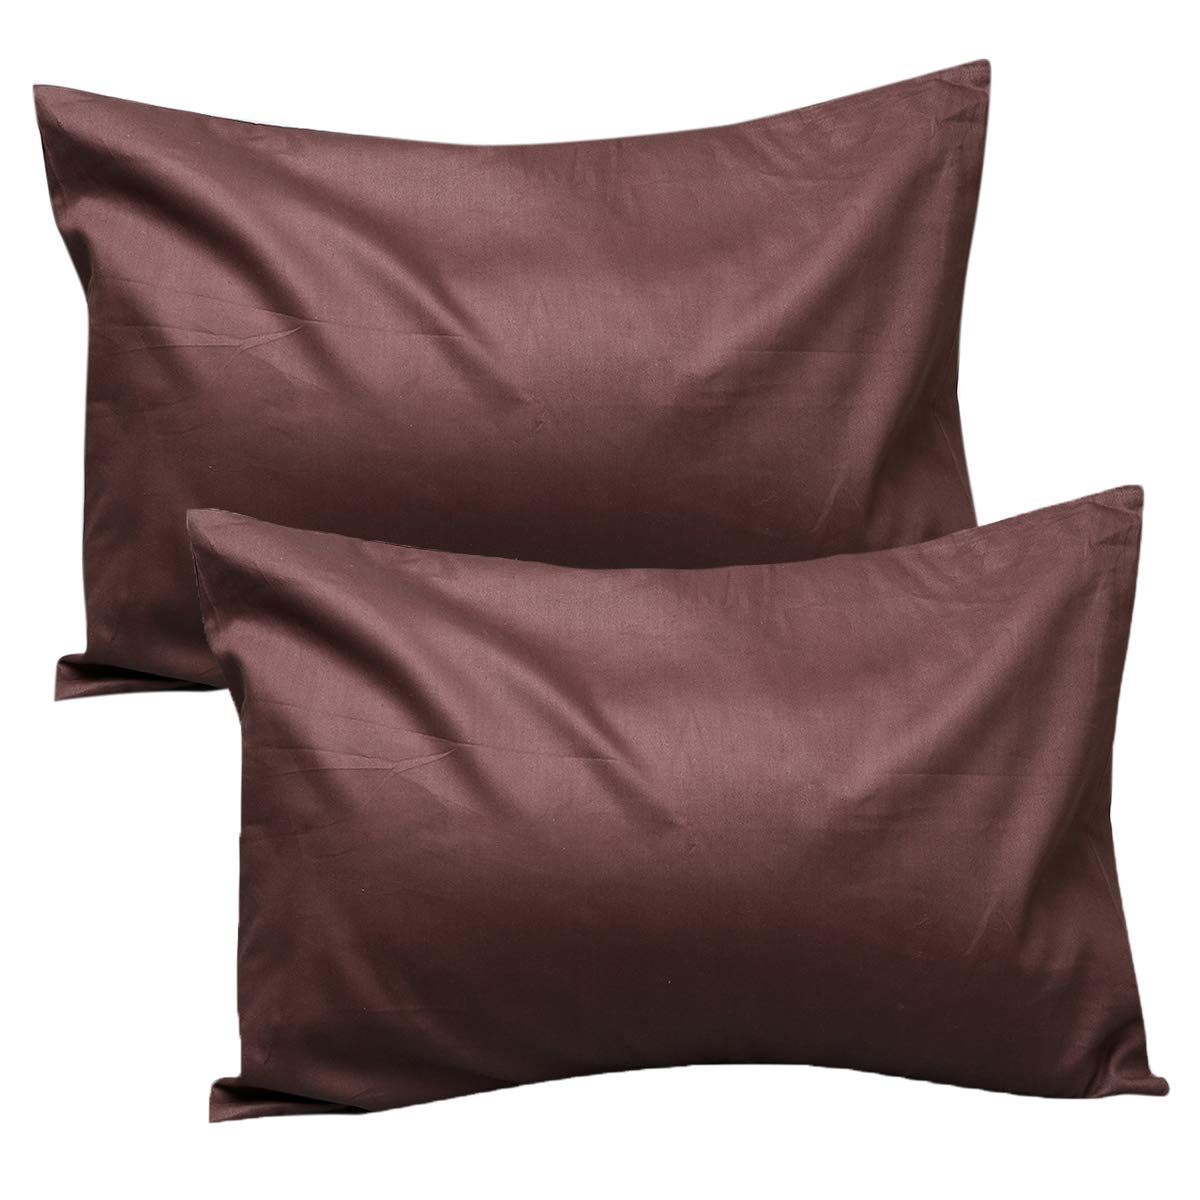 UOMNY Kids Toddler Pillowcases100% Natural Cotton Travel Pillowcase Cover with Envelope Closure 2 Pcs 14x20 Baby Pillow Cases for Sleeping Kids Solid Pillowcases Cases Brown Kids' Pillowcases